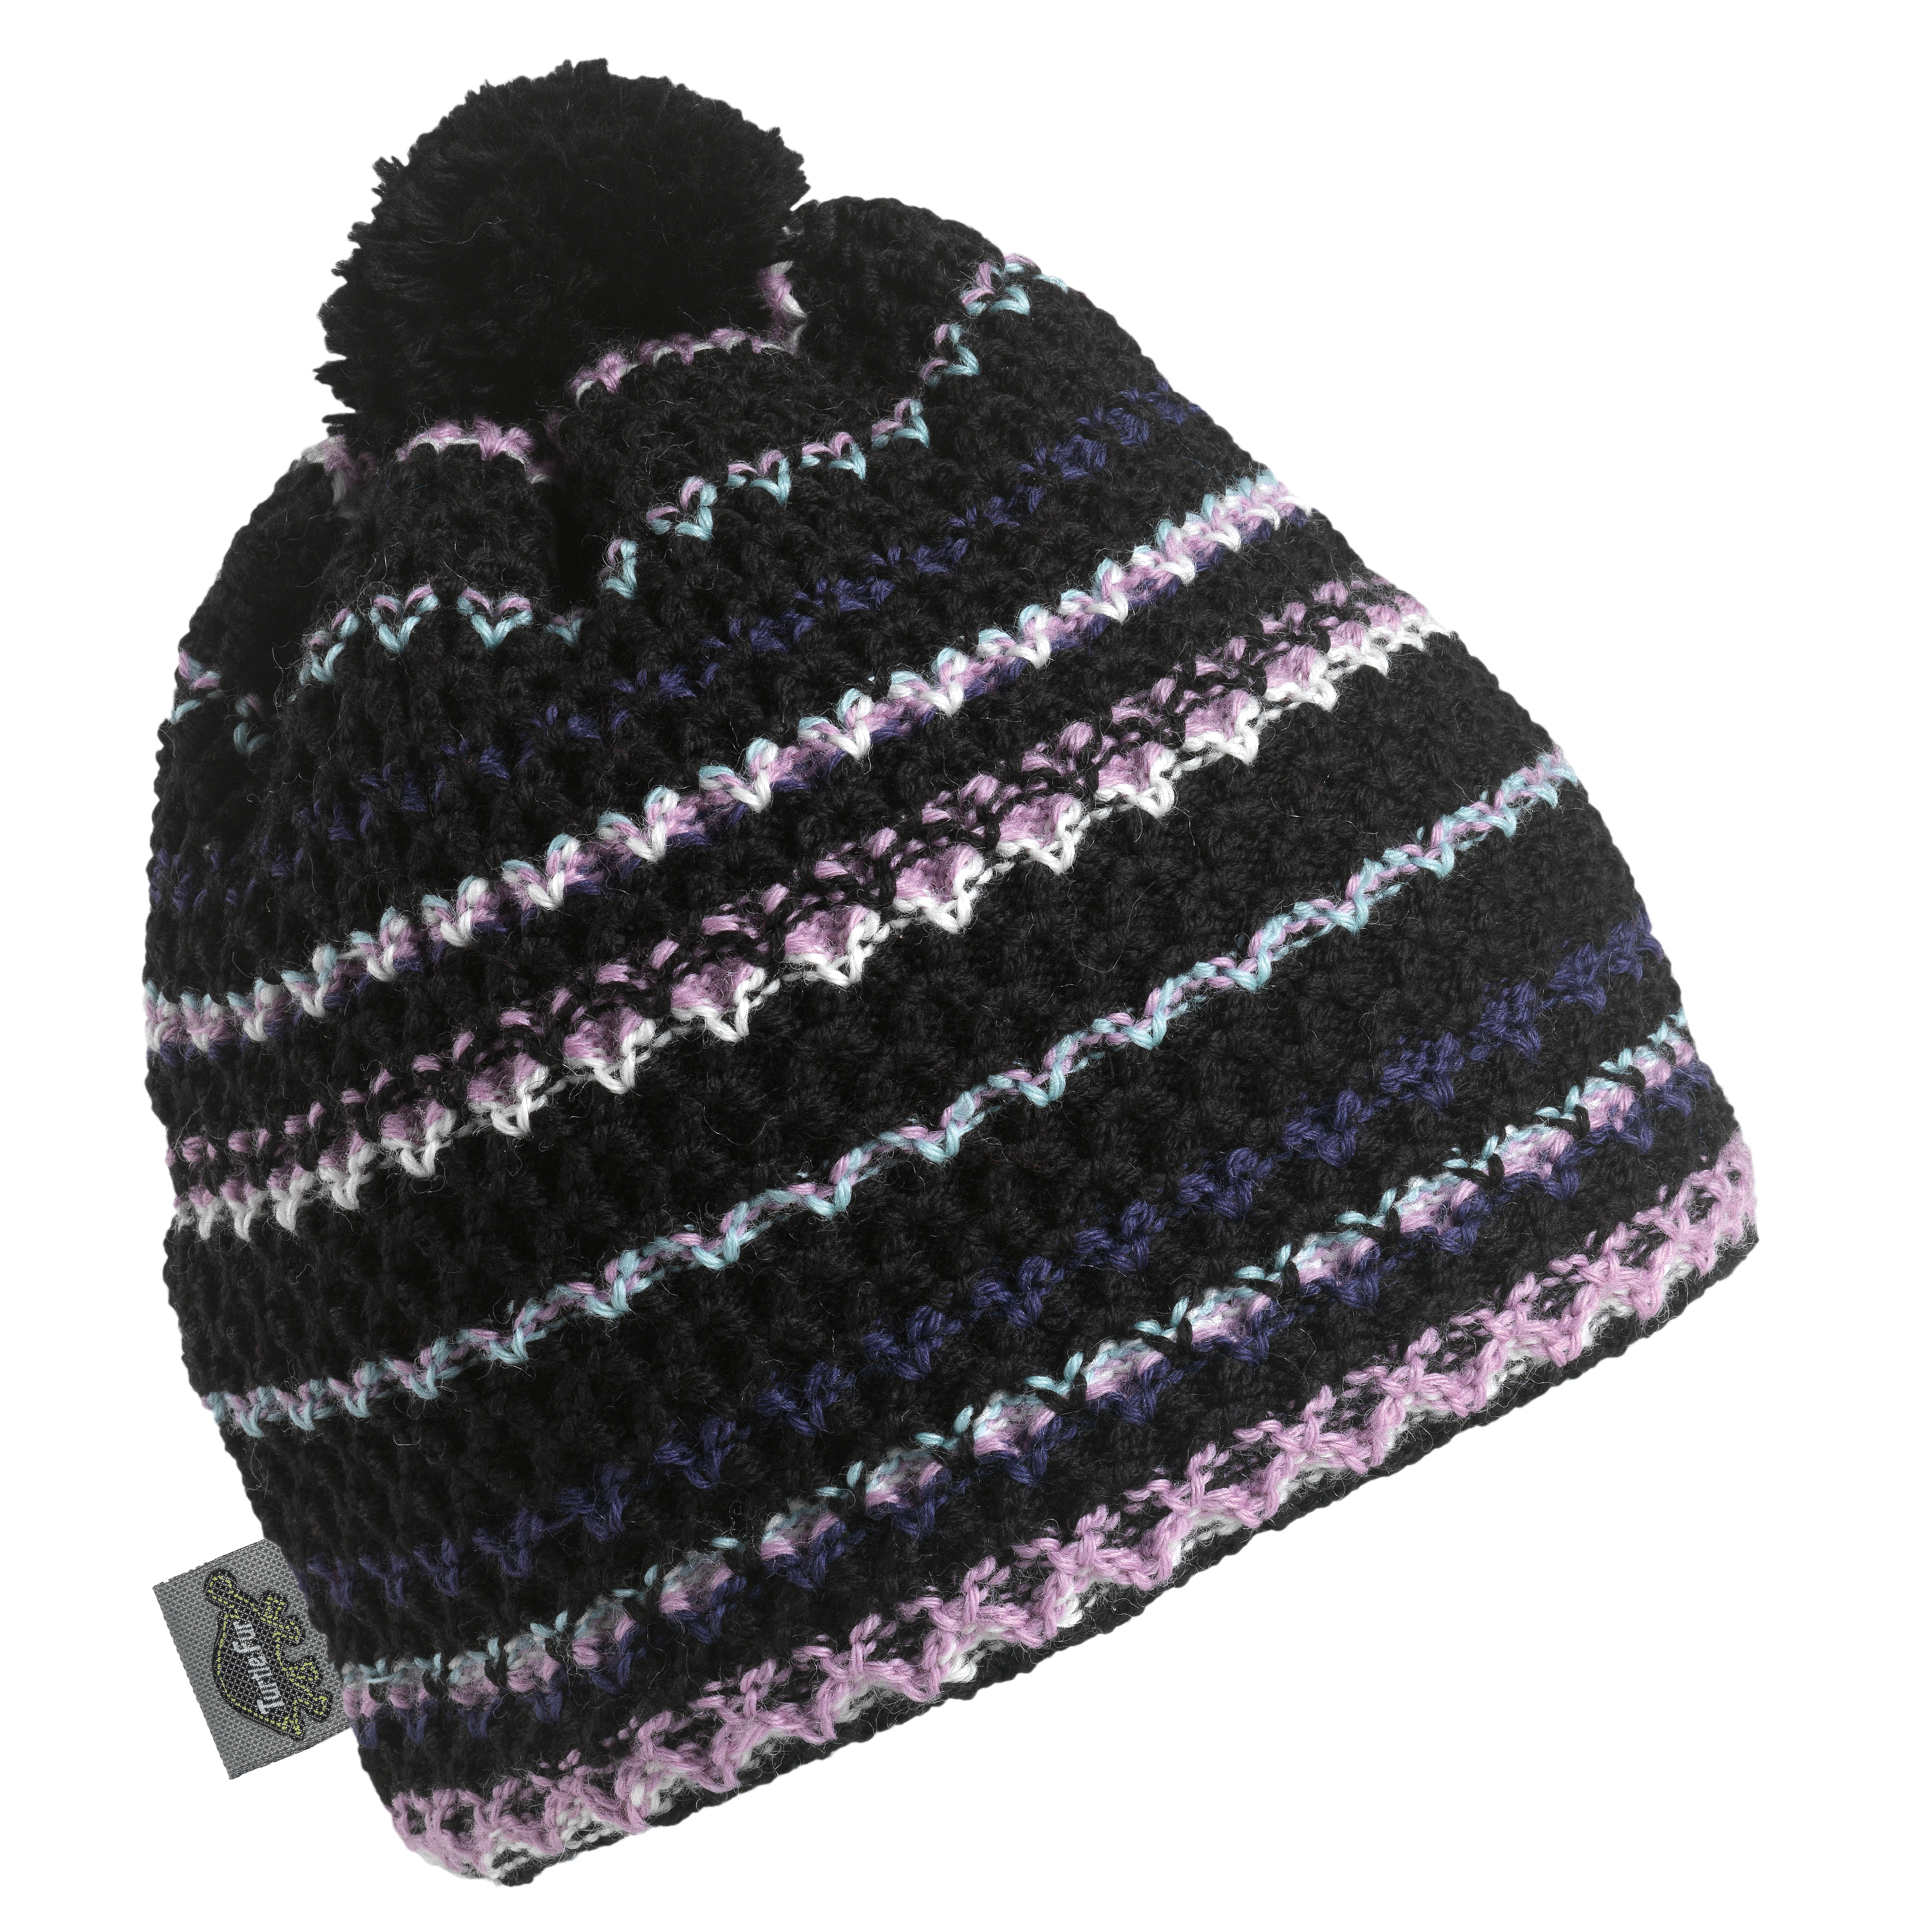 8a9353bf1 Details about Turtle Fur - Women's Serena, Classic Wool Ski Pom Hat